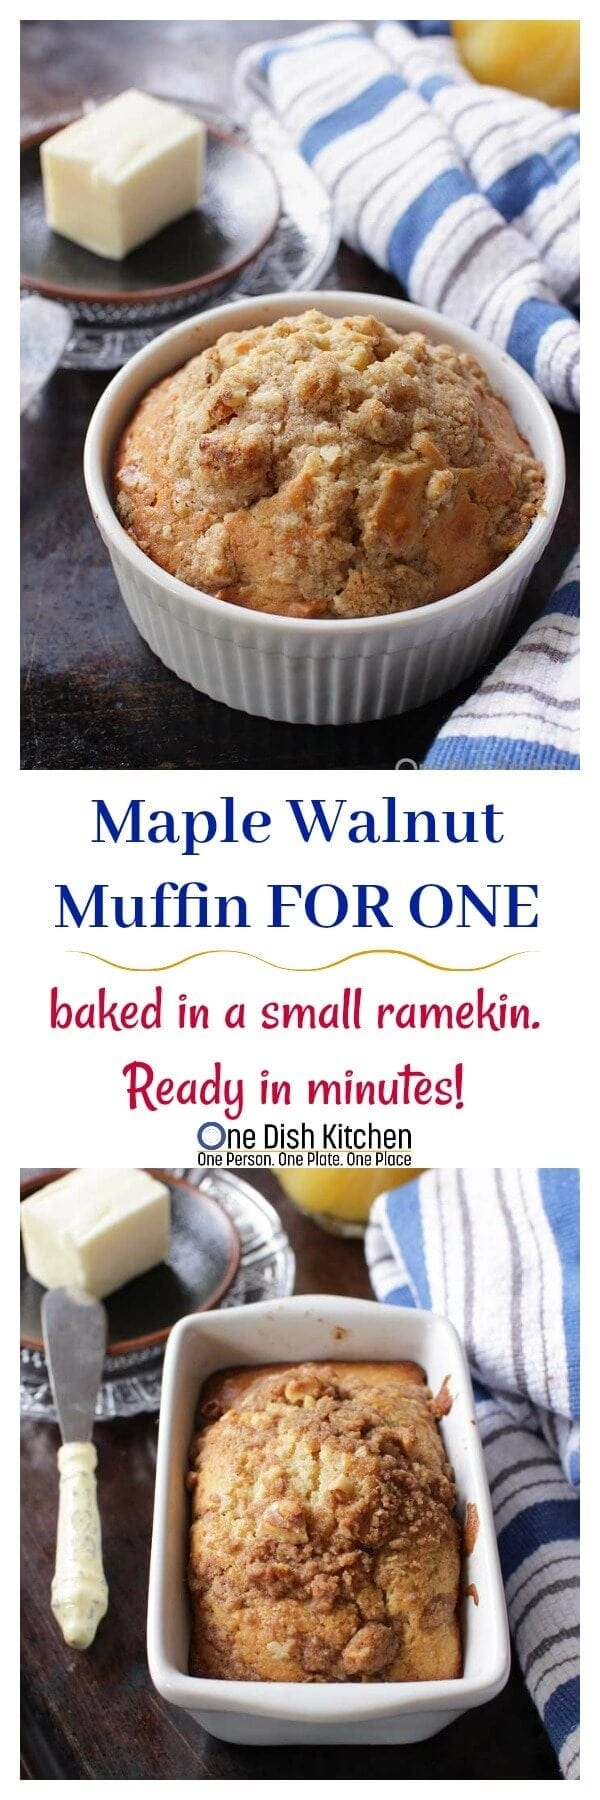 This Maple Walnut Muffin For One is the perfect size for one person. Made in a ramekin and topped with a cinnamon streusel topping. Ready in minutes! | One Dish Kitchen